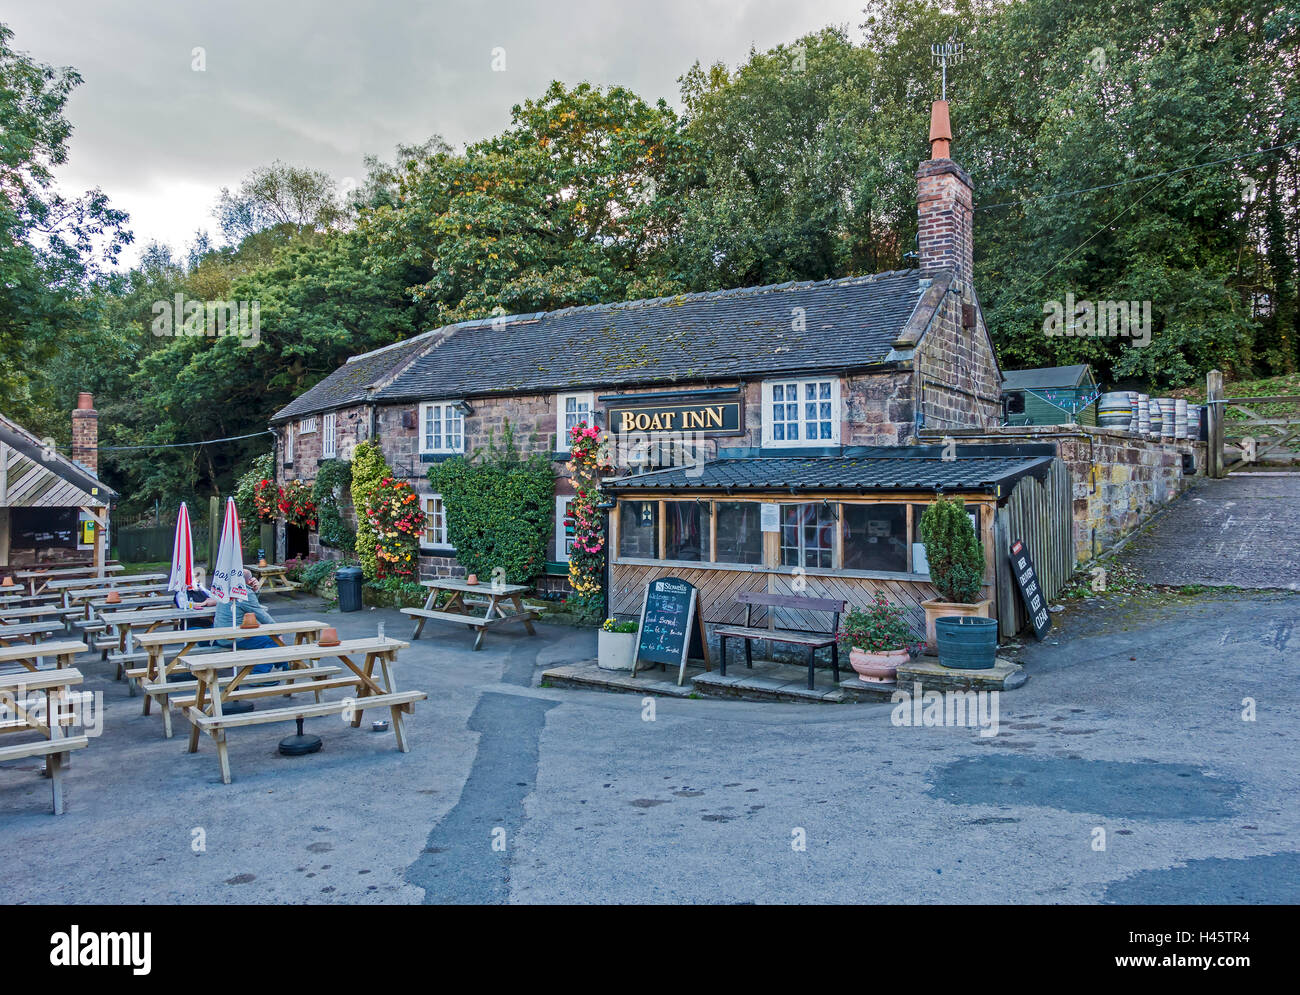 The Boat Inn in Cheddleton Staffordshire England UK - Stock Image